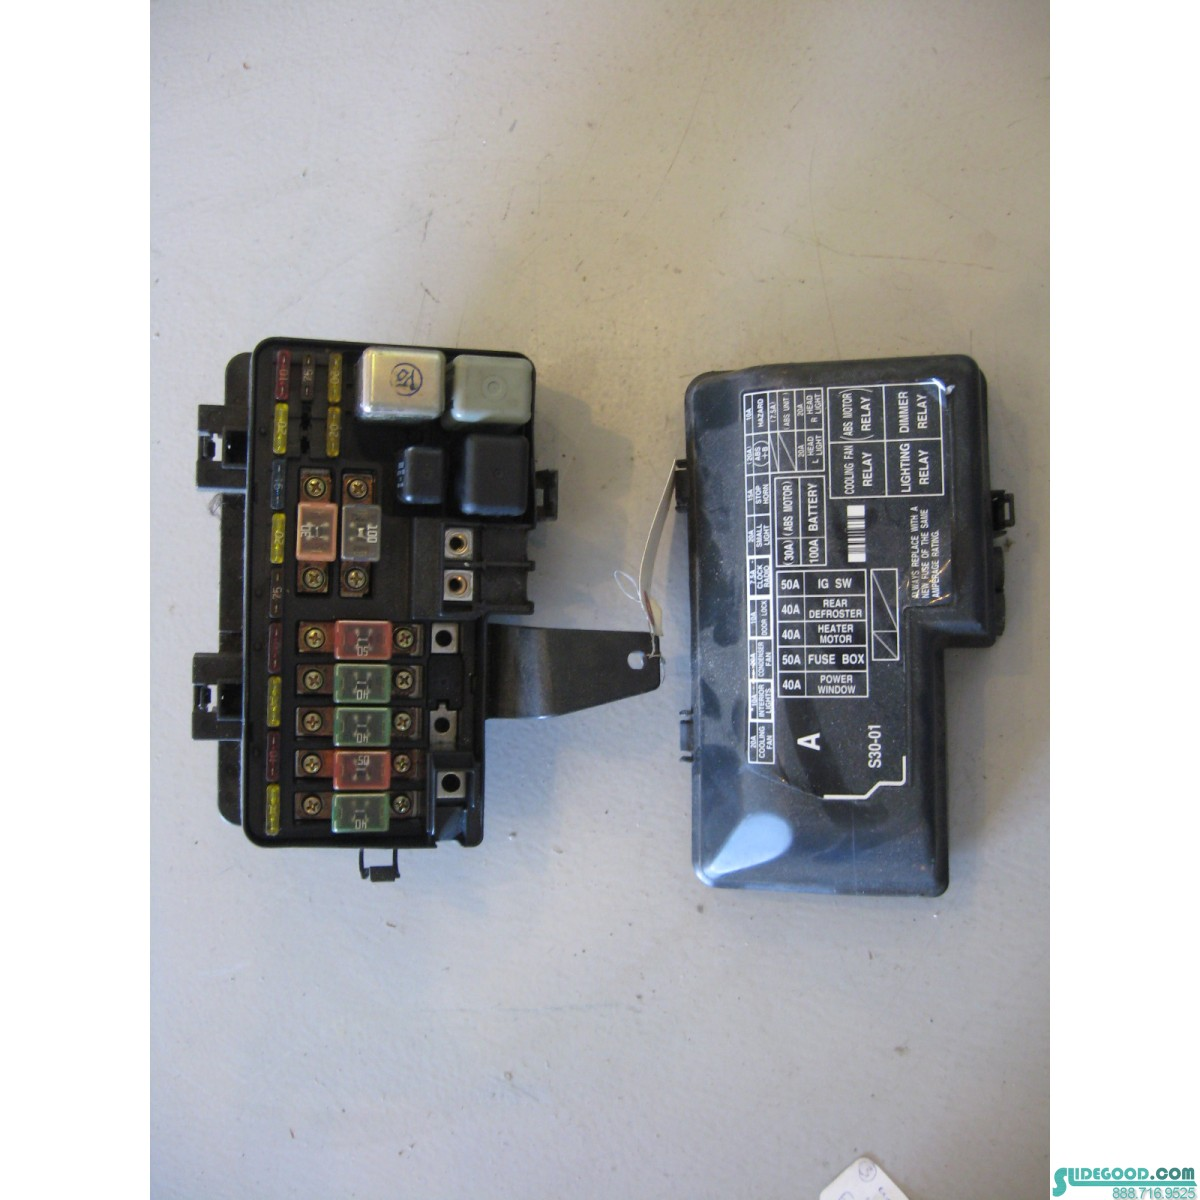 hight resolution of honda prelude fuse box wiring library rh 11 bloxhuette de 1989 honda prelude fuse box 1993 honda prelude interior fuse box diagram